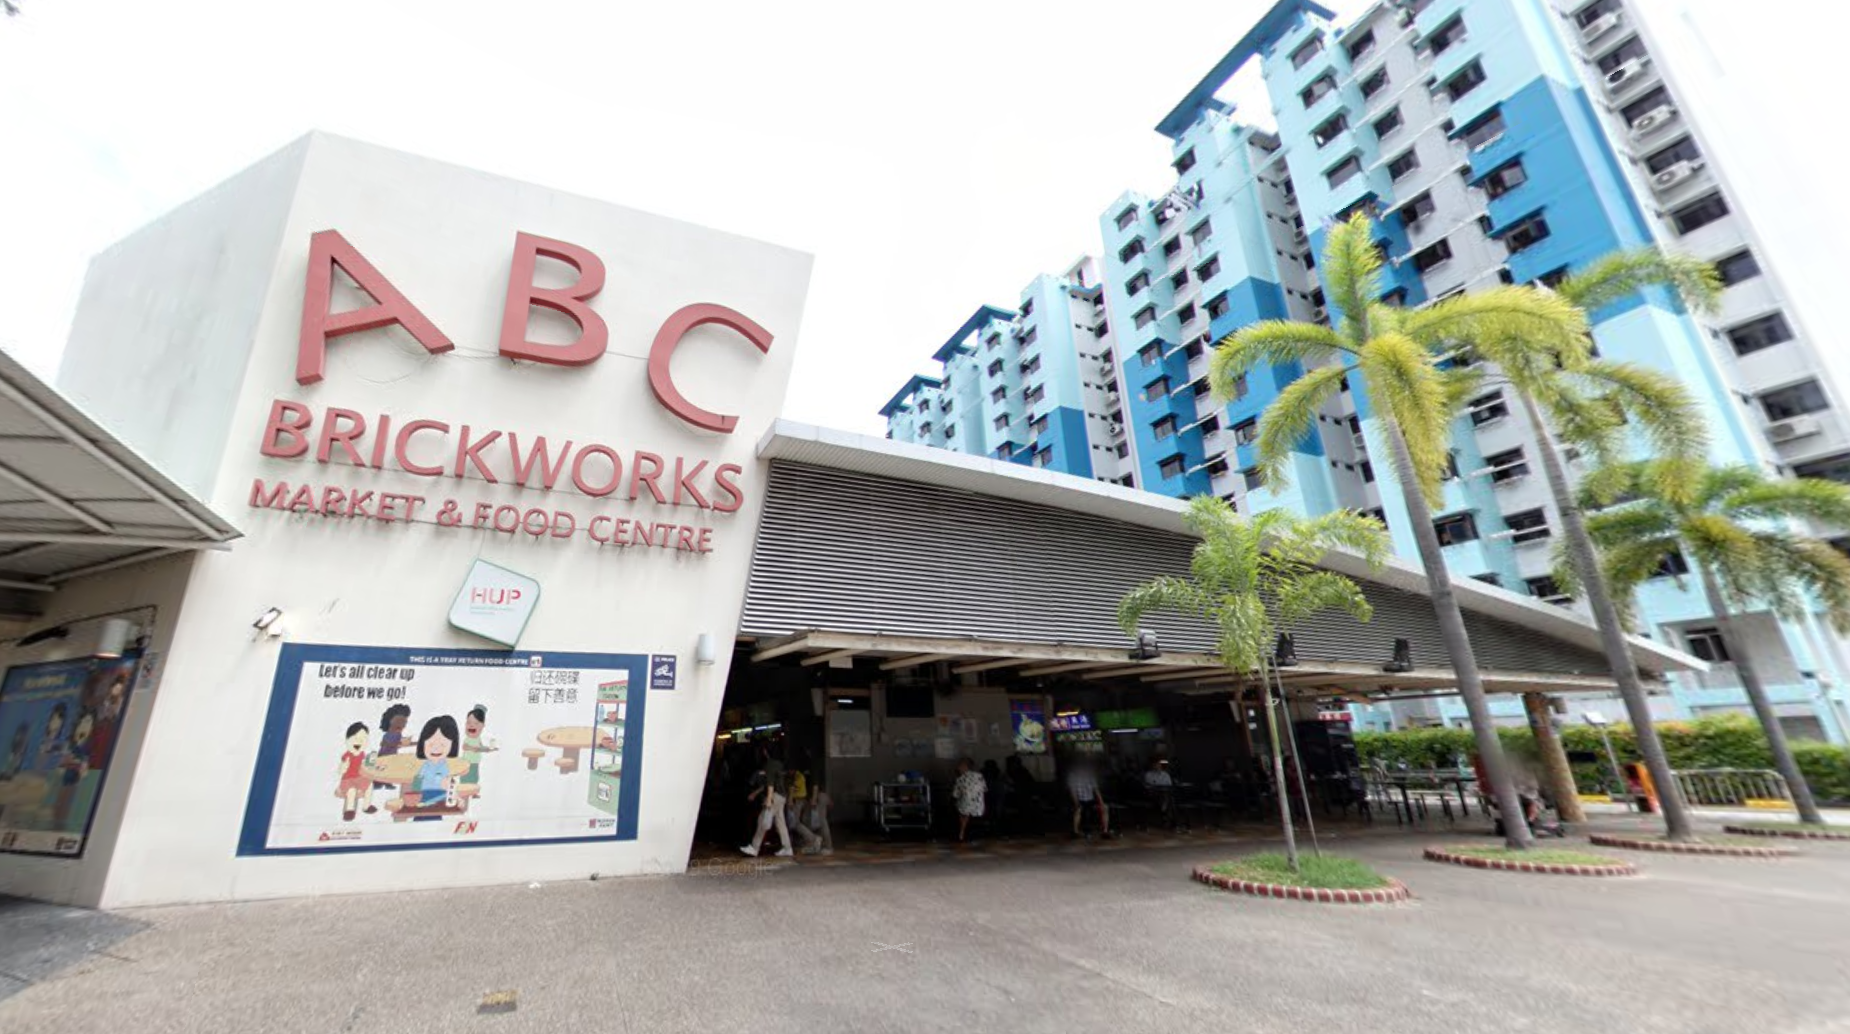 ABC Brickworks Market & Food Centre to close from March 16 to May 15 for renovation works - Mothership.SG - News from Singapore, Asia and around the world